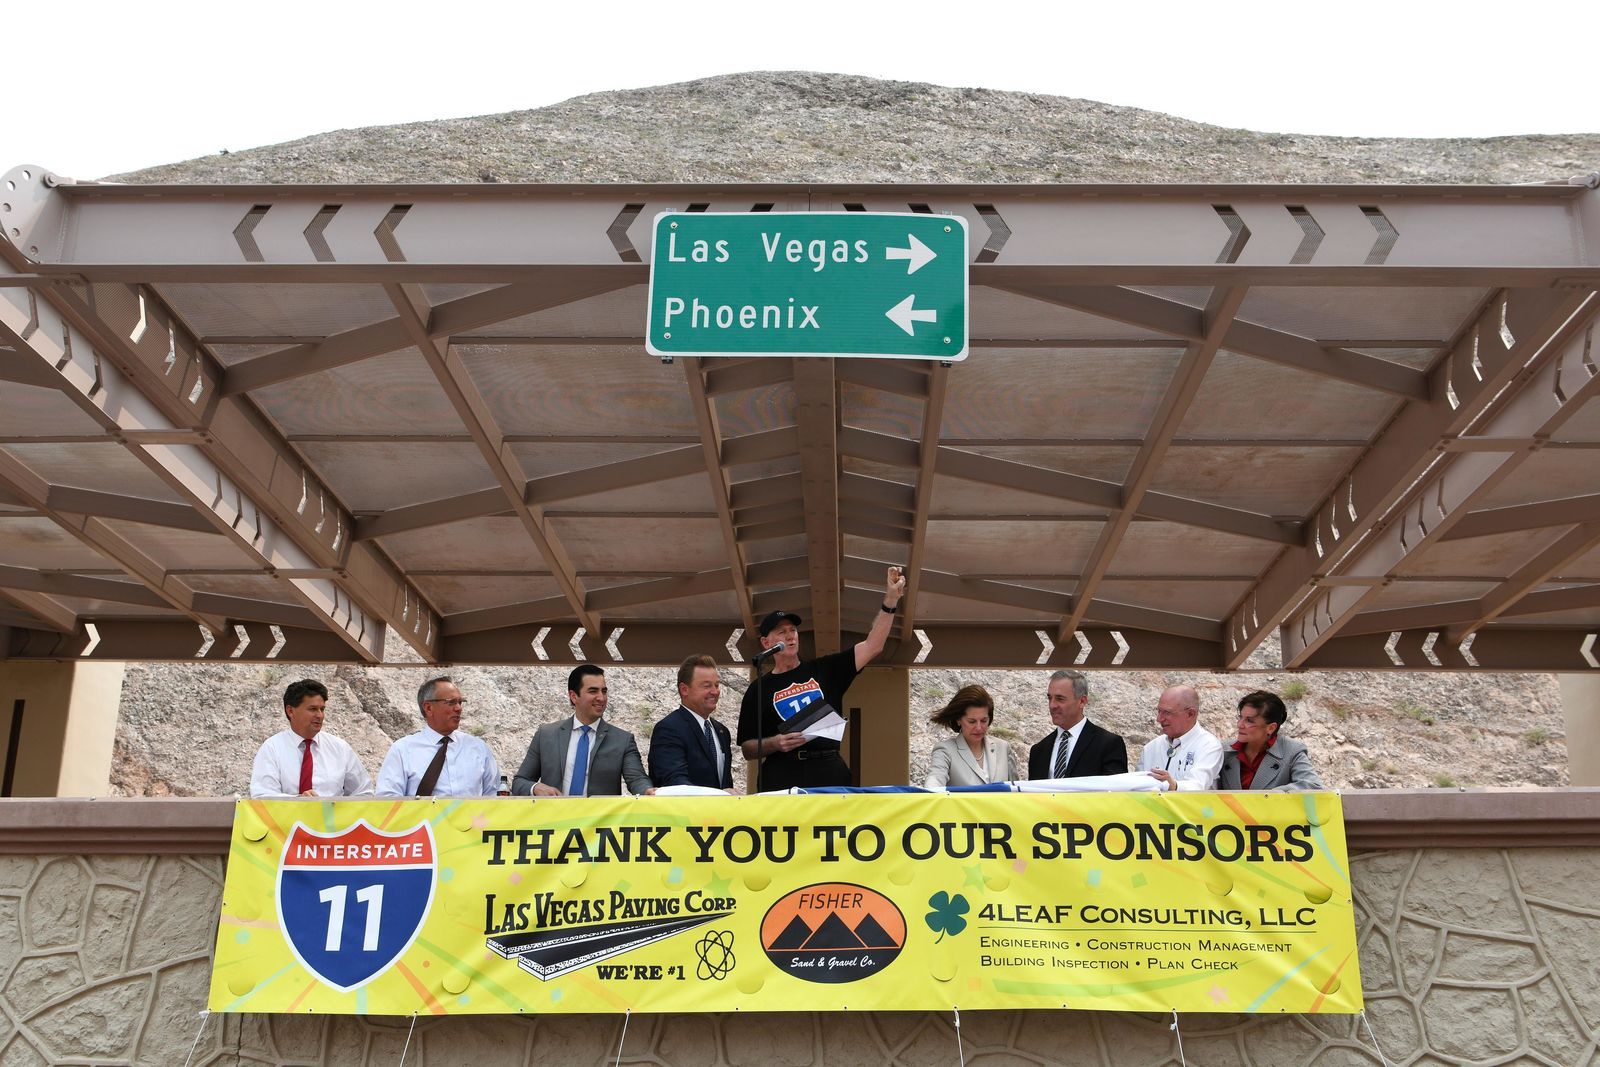 Elected officials take part in the grand opening of a new section of Interstate 11 Thursday, August 9, 2018, in Boulder City. From left are Boulder City Mayor Rod Woodbury, Clark County Commissioner Jim Gibson, Rep. Ruben Kihuen, D-Nev., Sen. Dean Heller, R-Nev., Clark County Commissioner Larry Brown, Sen. Catherine Cortez Masto, D-Nev., Federal Highway Administration Director of Field Services West Peter Osborn, Nevada State Sen. Joe Hardy, and Las Vegas Chamber of Commerce President Mary Beth Sewald. The section, also referred to as the Boulder City Bypass, marks the official start of the I-11 project between Las Vegas and Phoenix. CREDIT: Sam Morris/Las Vegas News Bureau